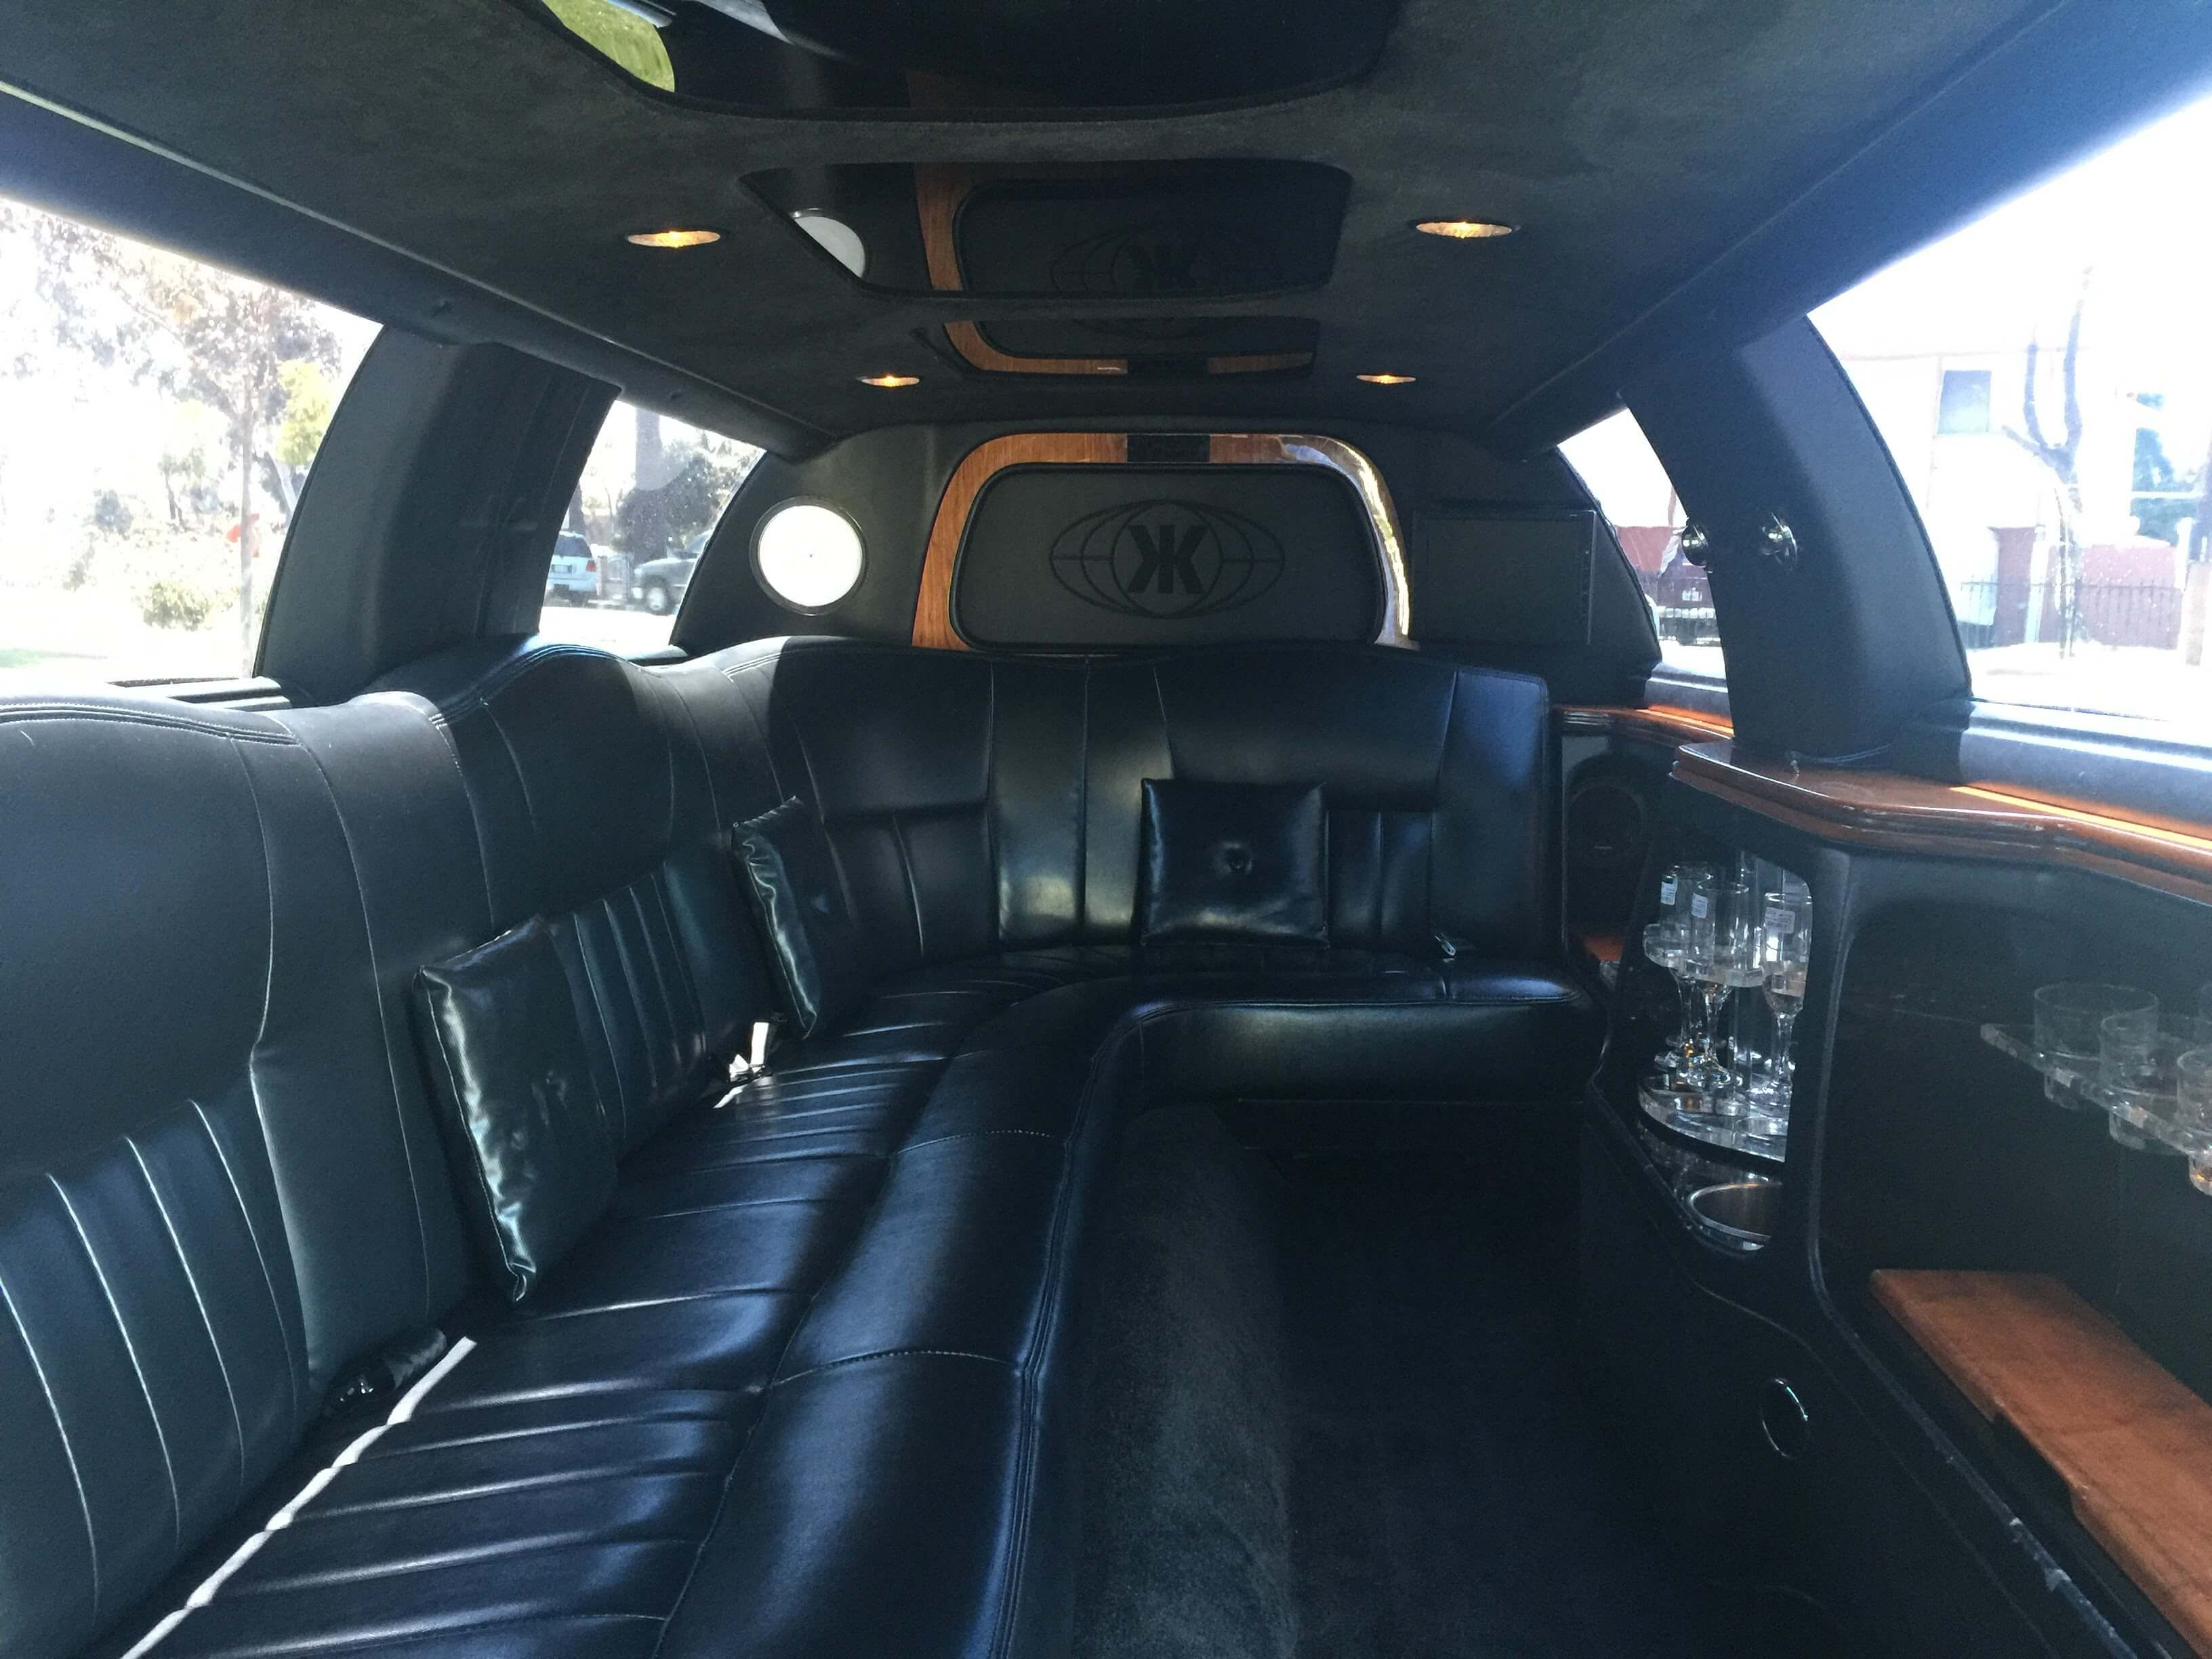 Lincoln Continental Stretched Limousine 1970 inside Pesquisa